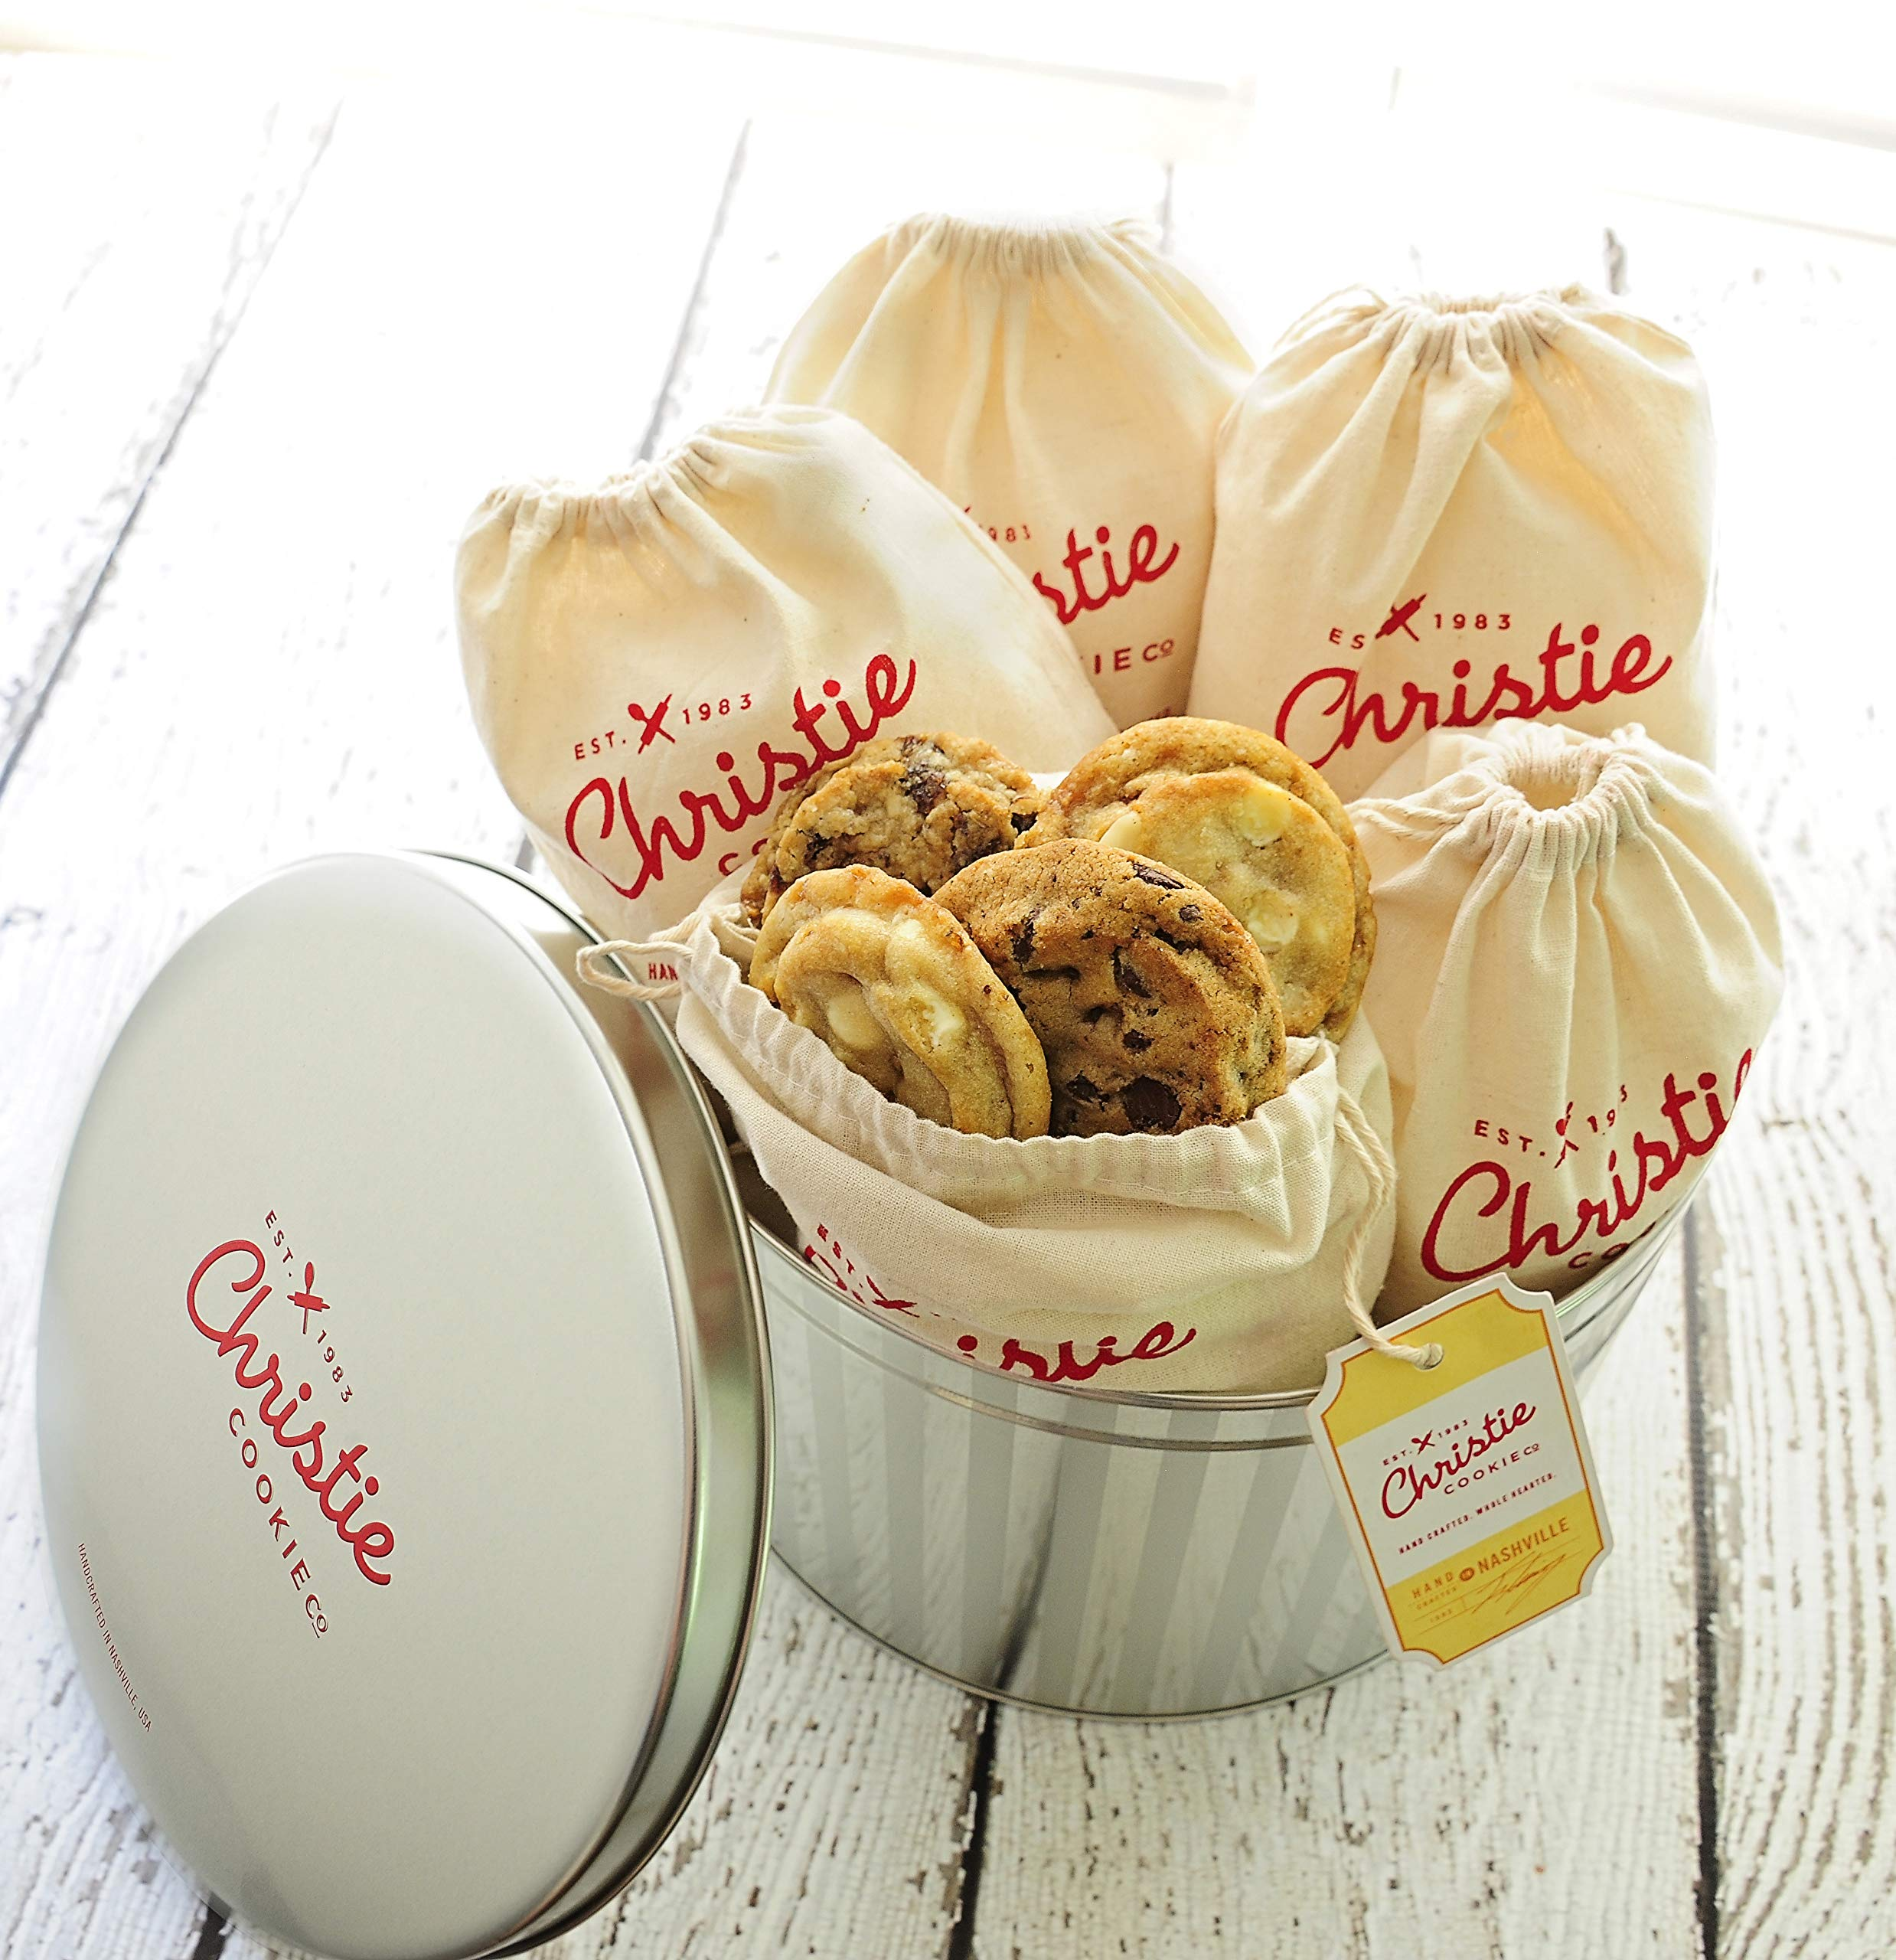 Christie Cookies, Gourmet Assorted Cookies, 60 Fresh-Baked Cookies in Silver Tin, No Added Preservatives, 100% Real Butter, Holiday & Corporate Gift Tin, Birthday Gift Idea for Men & Women